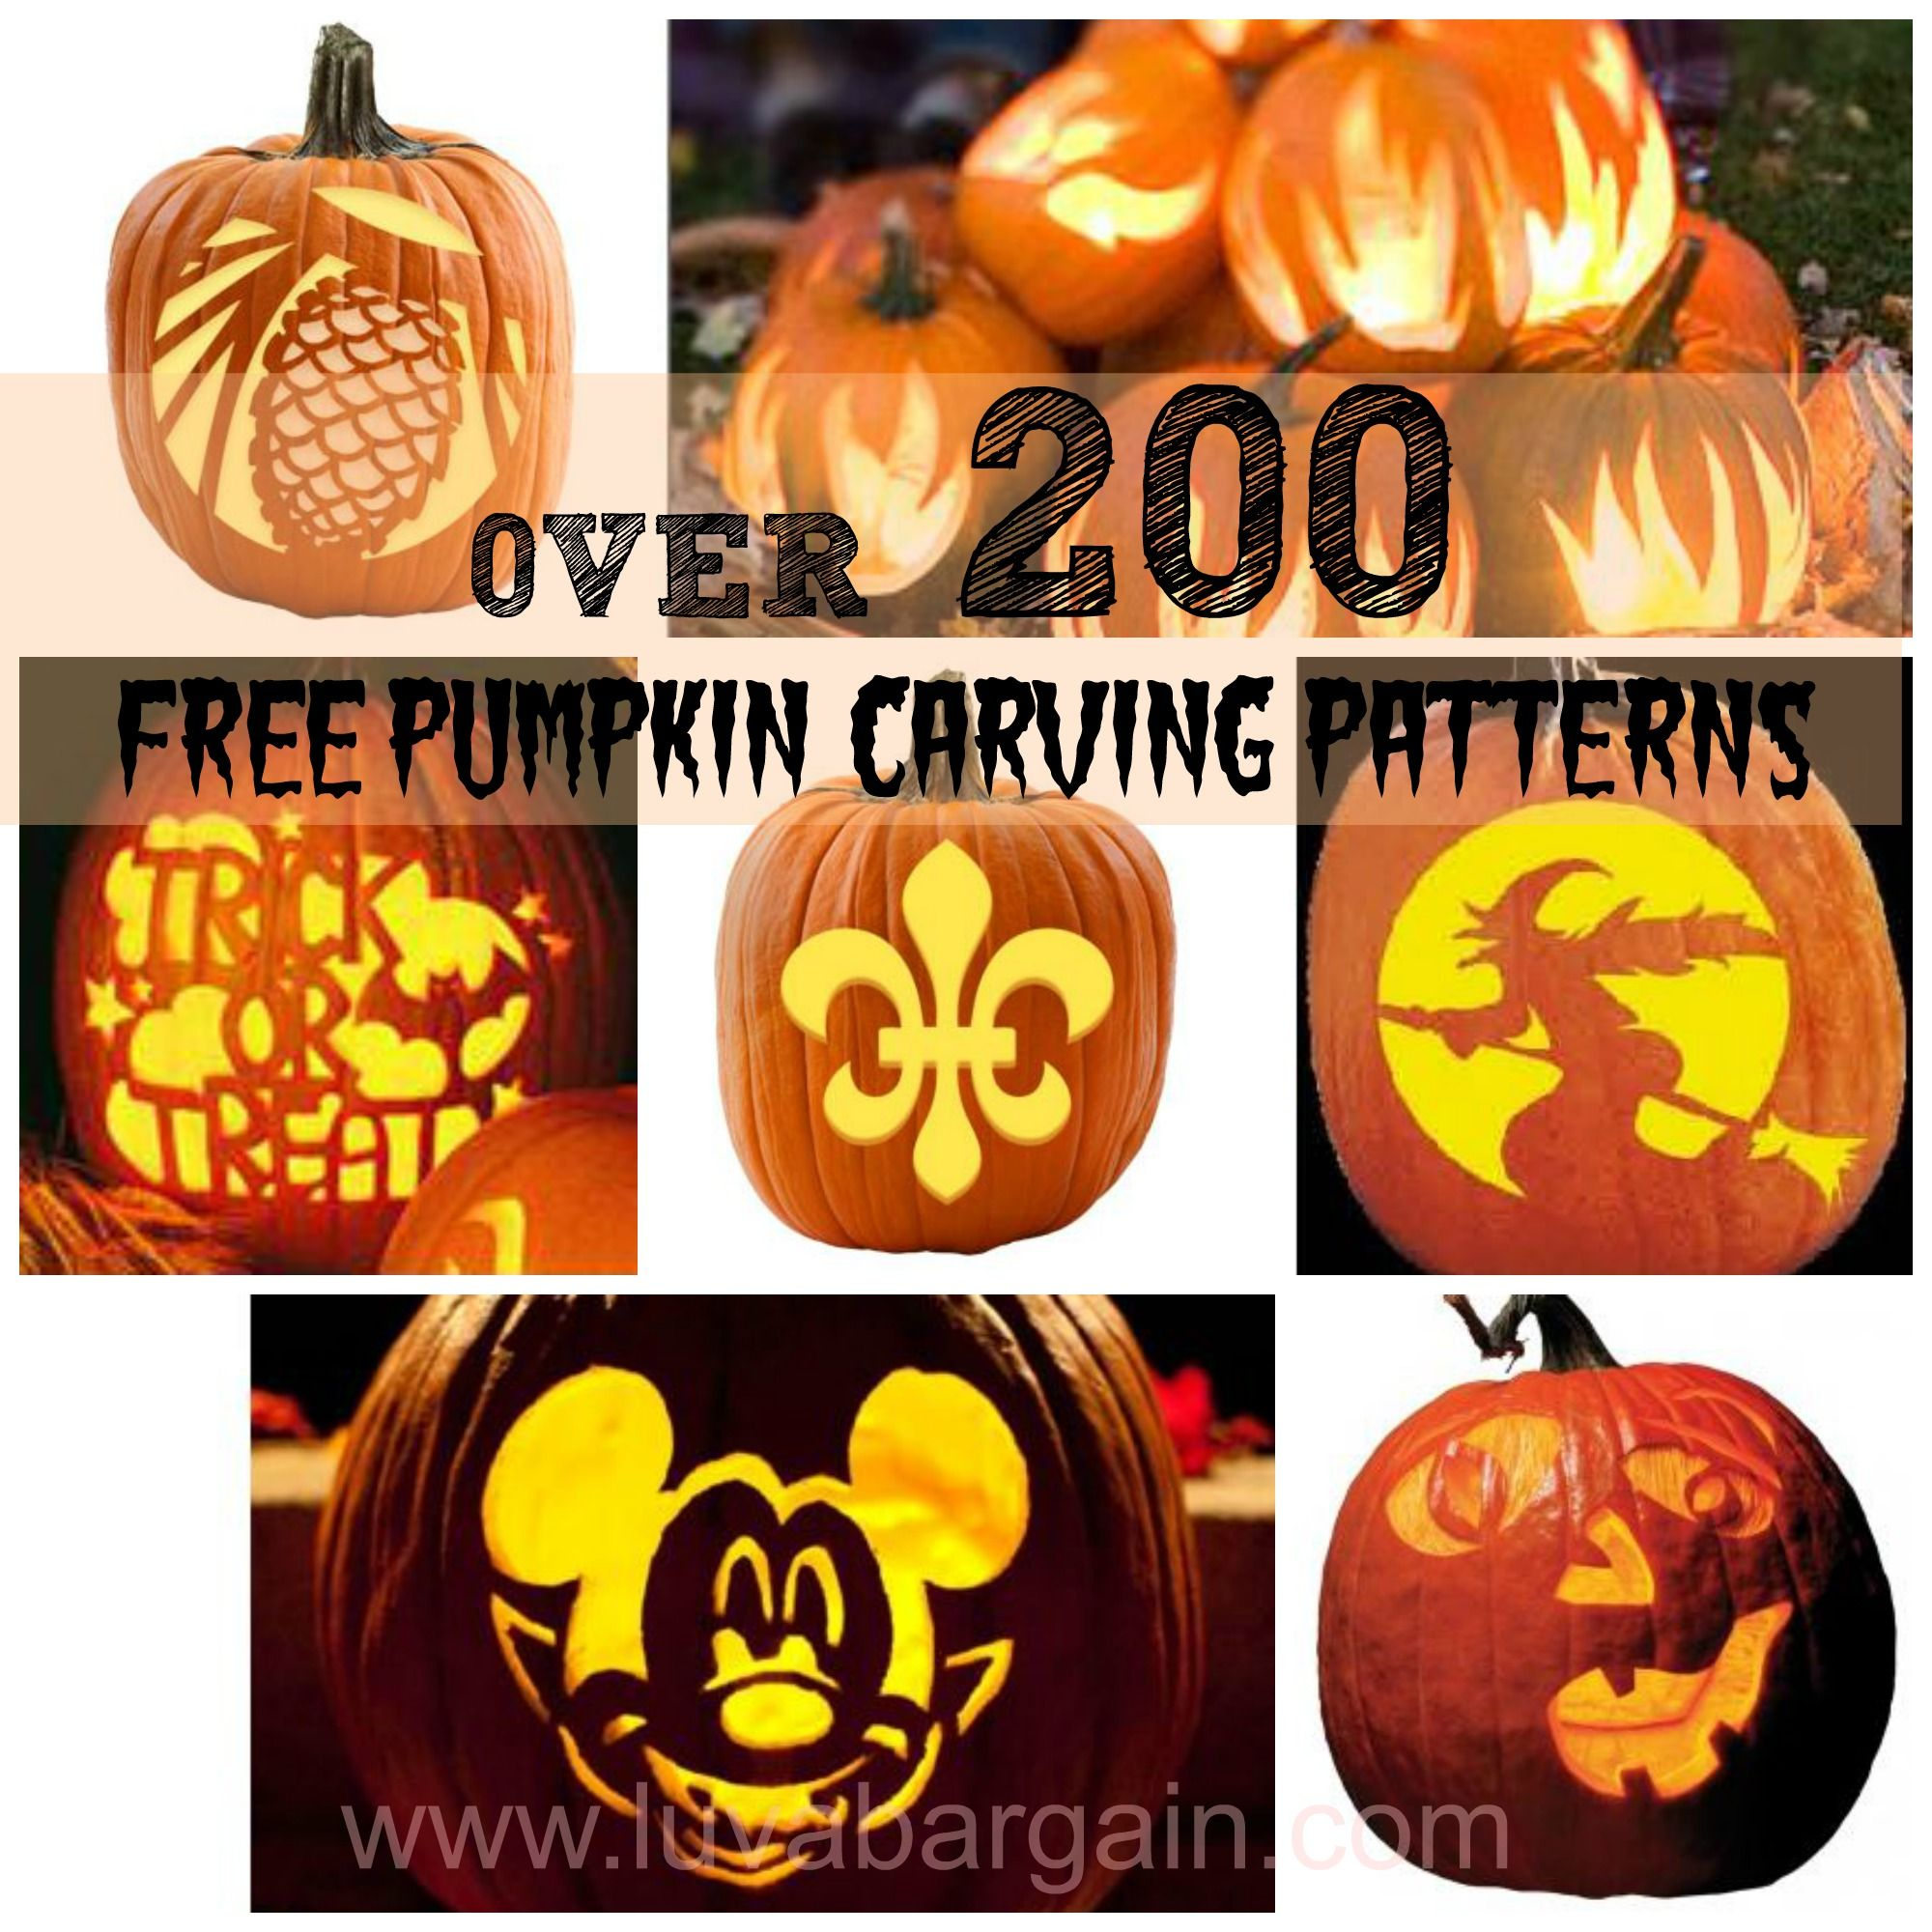 Hundreds of Free Pumpkin Carving Patterns | Free pumpkin carving ...